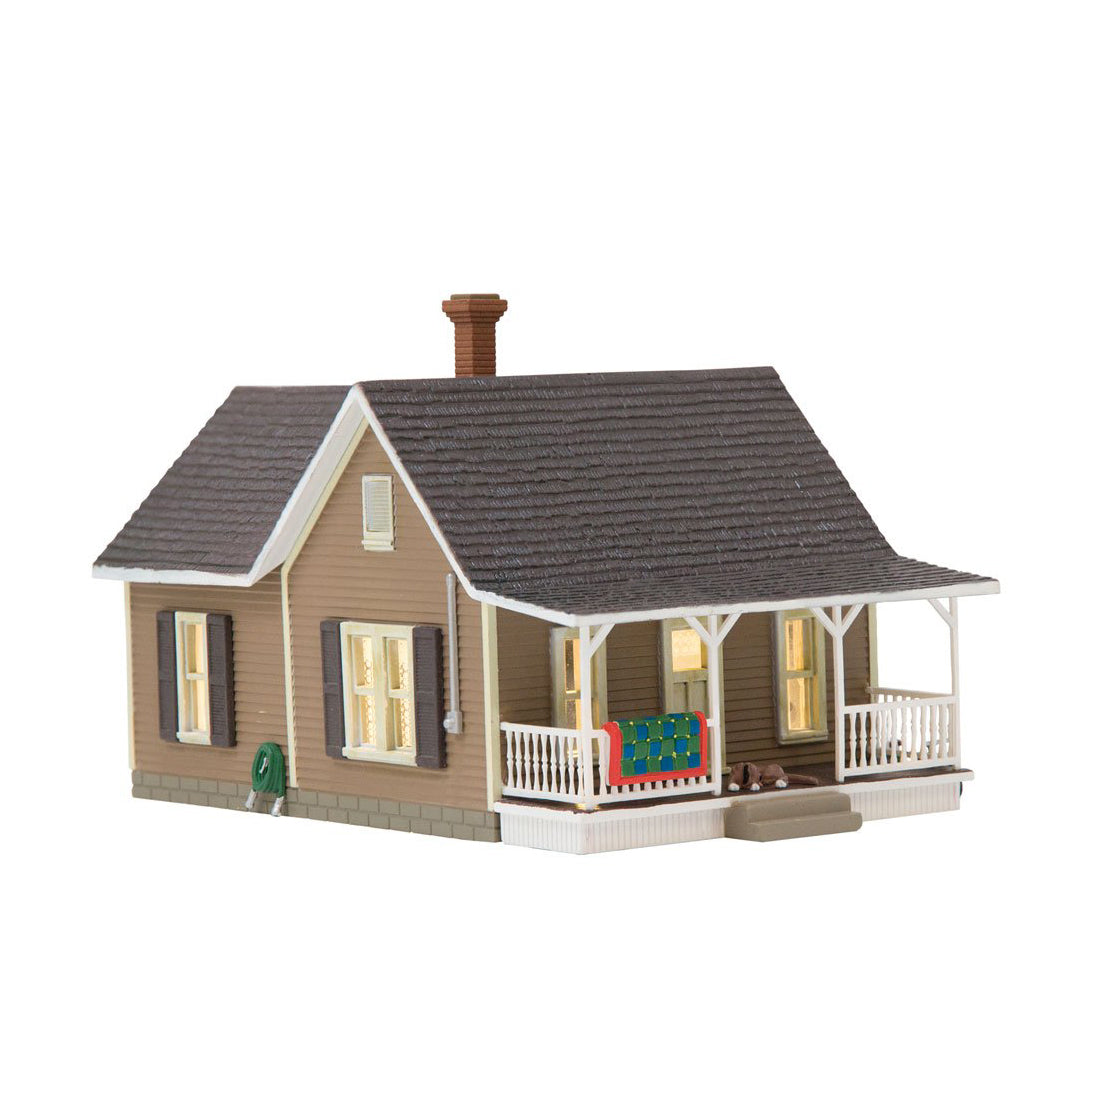 HO Scale: Granny's House